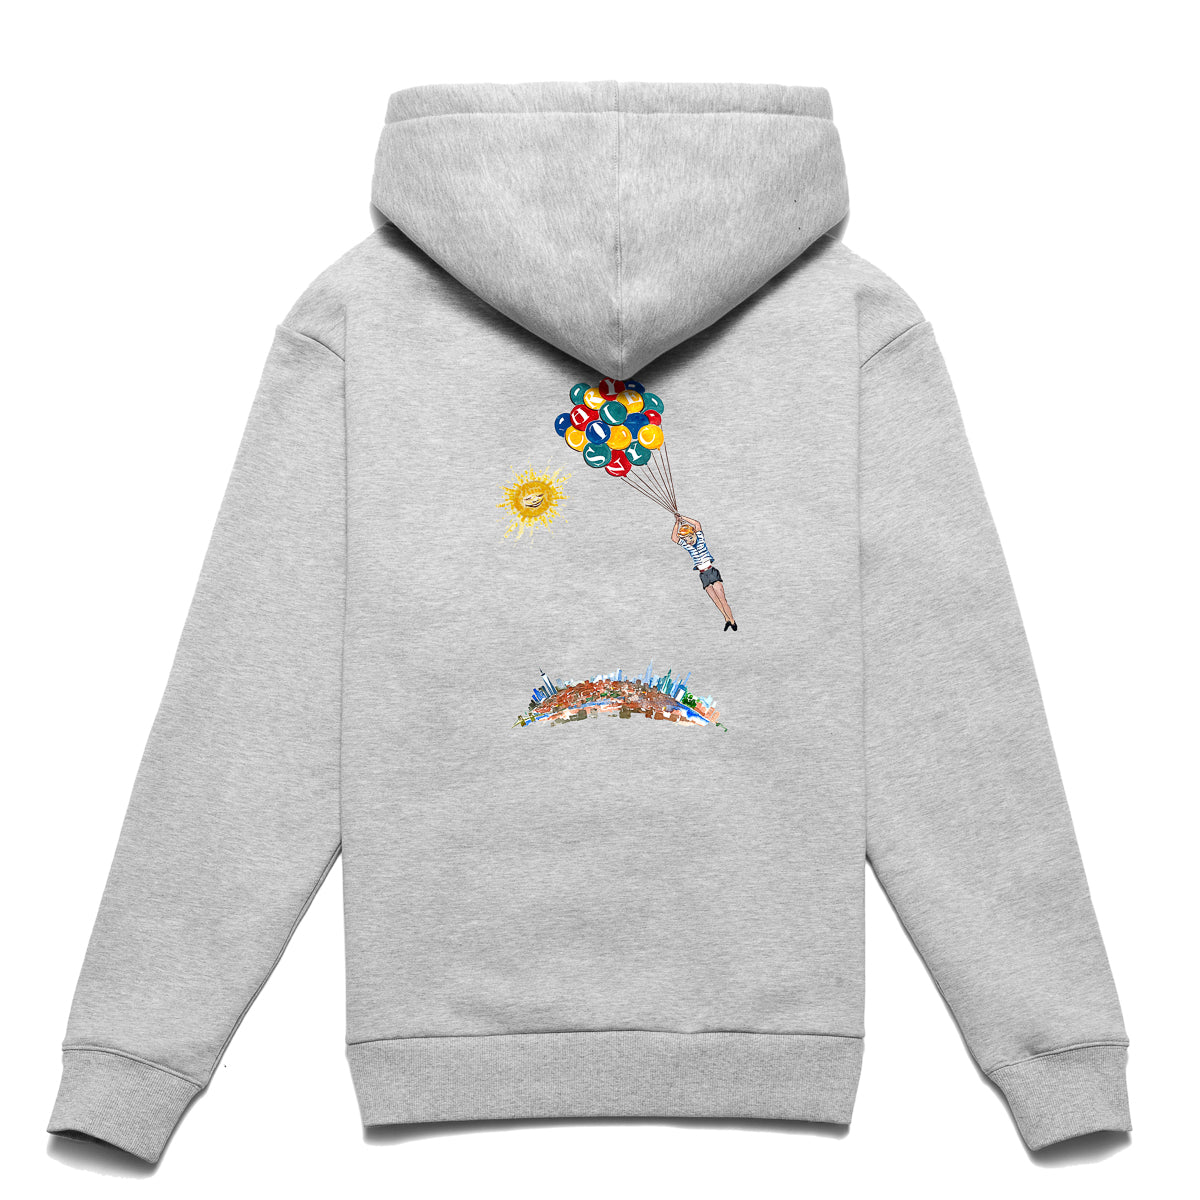 Load image into Gallery viewer, NYC Balloon boy hoodie_Ash grey